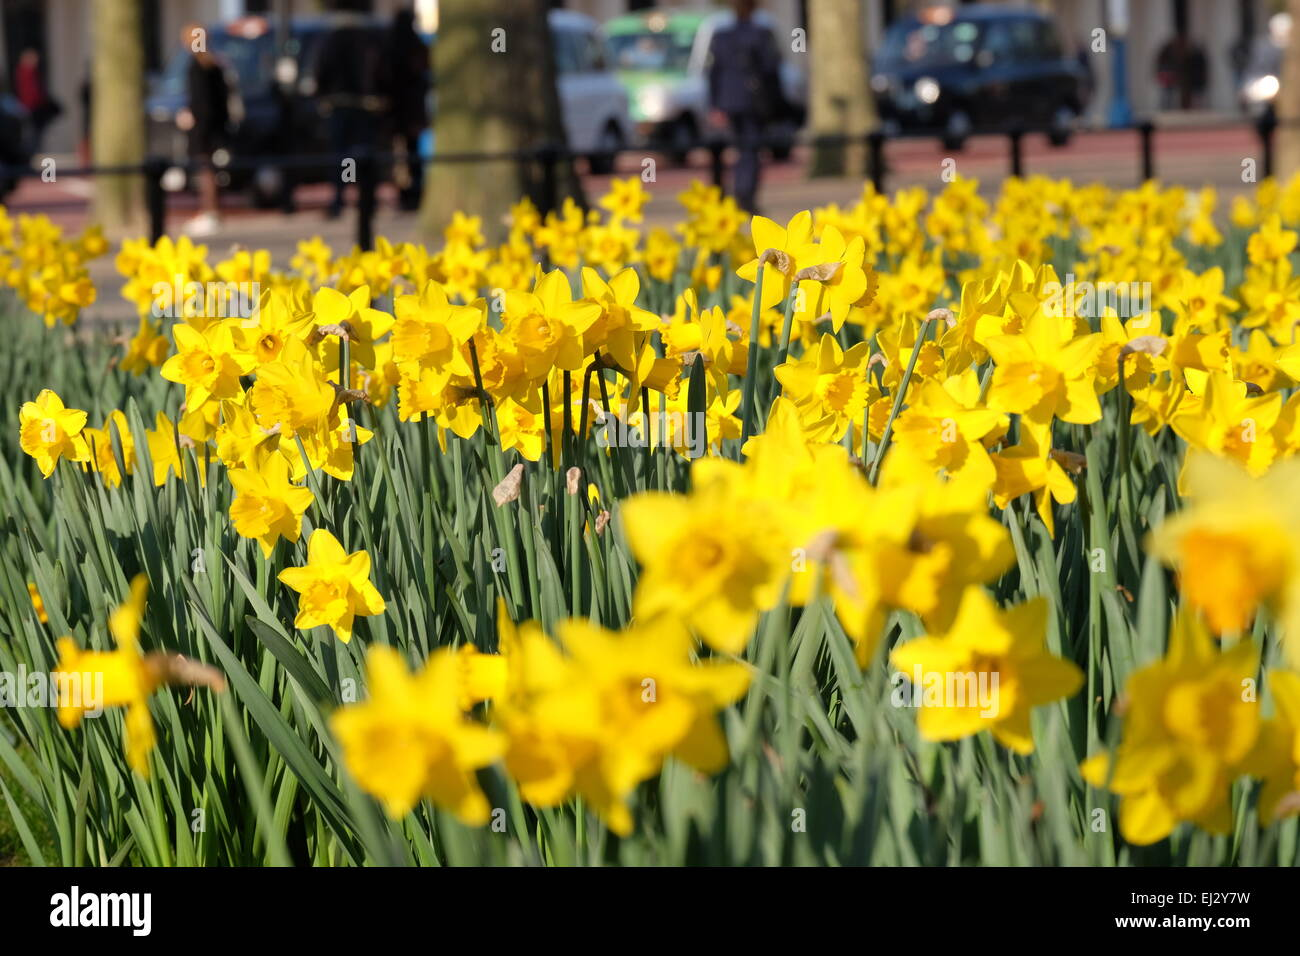 London, UK. 20th March, 2015. Afternoon sunshine on Daffodils in London Credit:  Rachel Megawhat/Alamy Live News Stock Photo